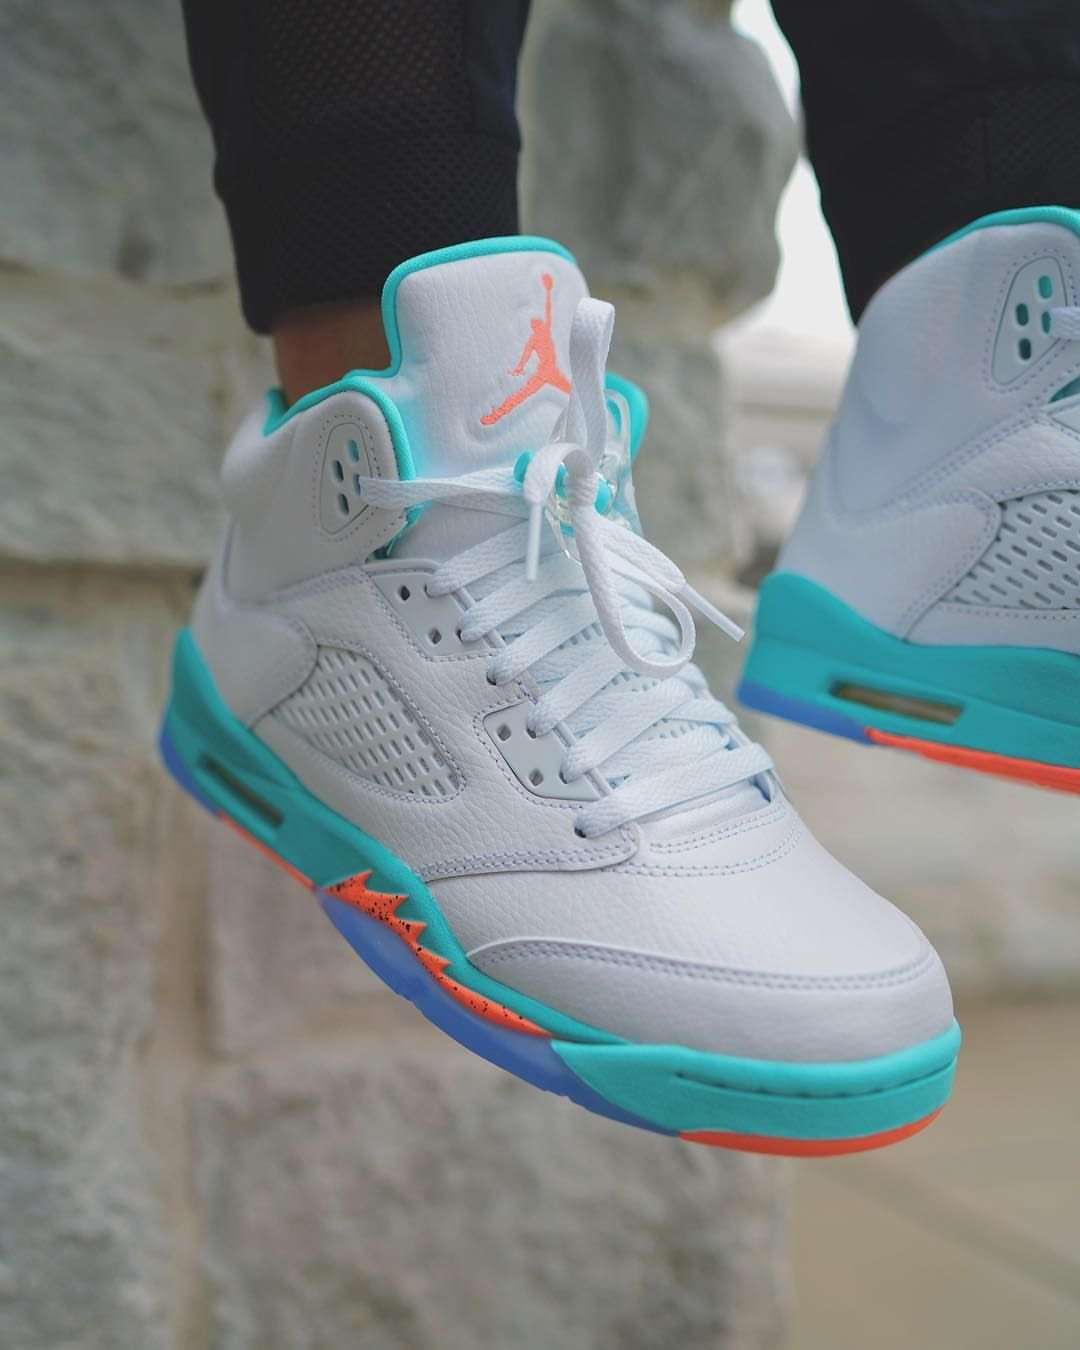 pretty nice 1b954 75e1d Release Date   July 14, 2018 Air Jordan 5 Retro Light Aqua Credit    FinishLine —  nike  jordan  retro  sneakerhead  sneakersaddict  sneakers   kicks ...